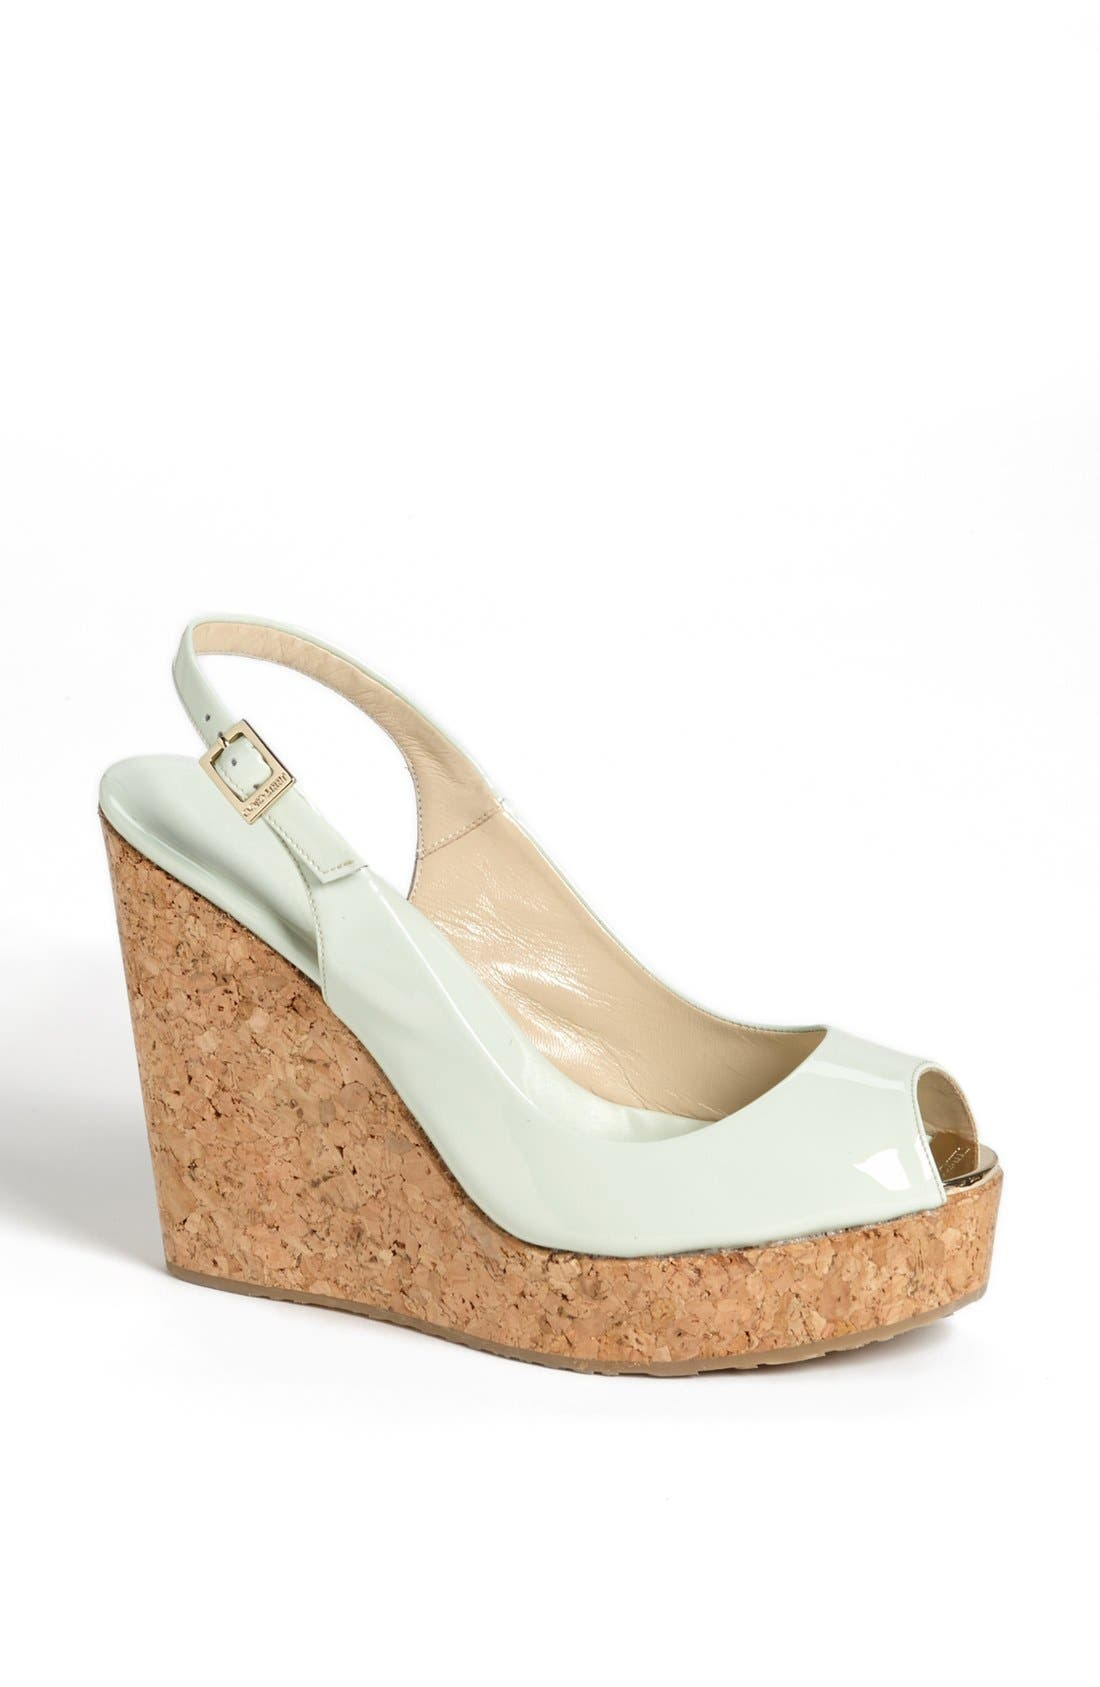 Main Image - Jimmy Choo 'Prova' Cork Slingback Wedge Sandal